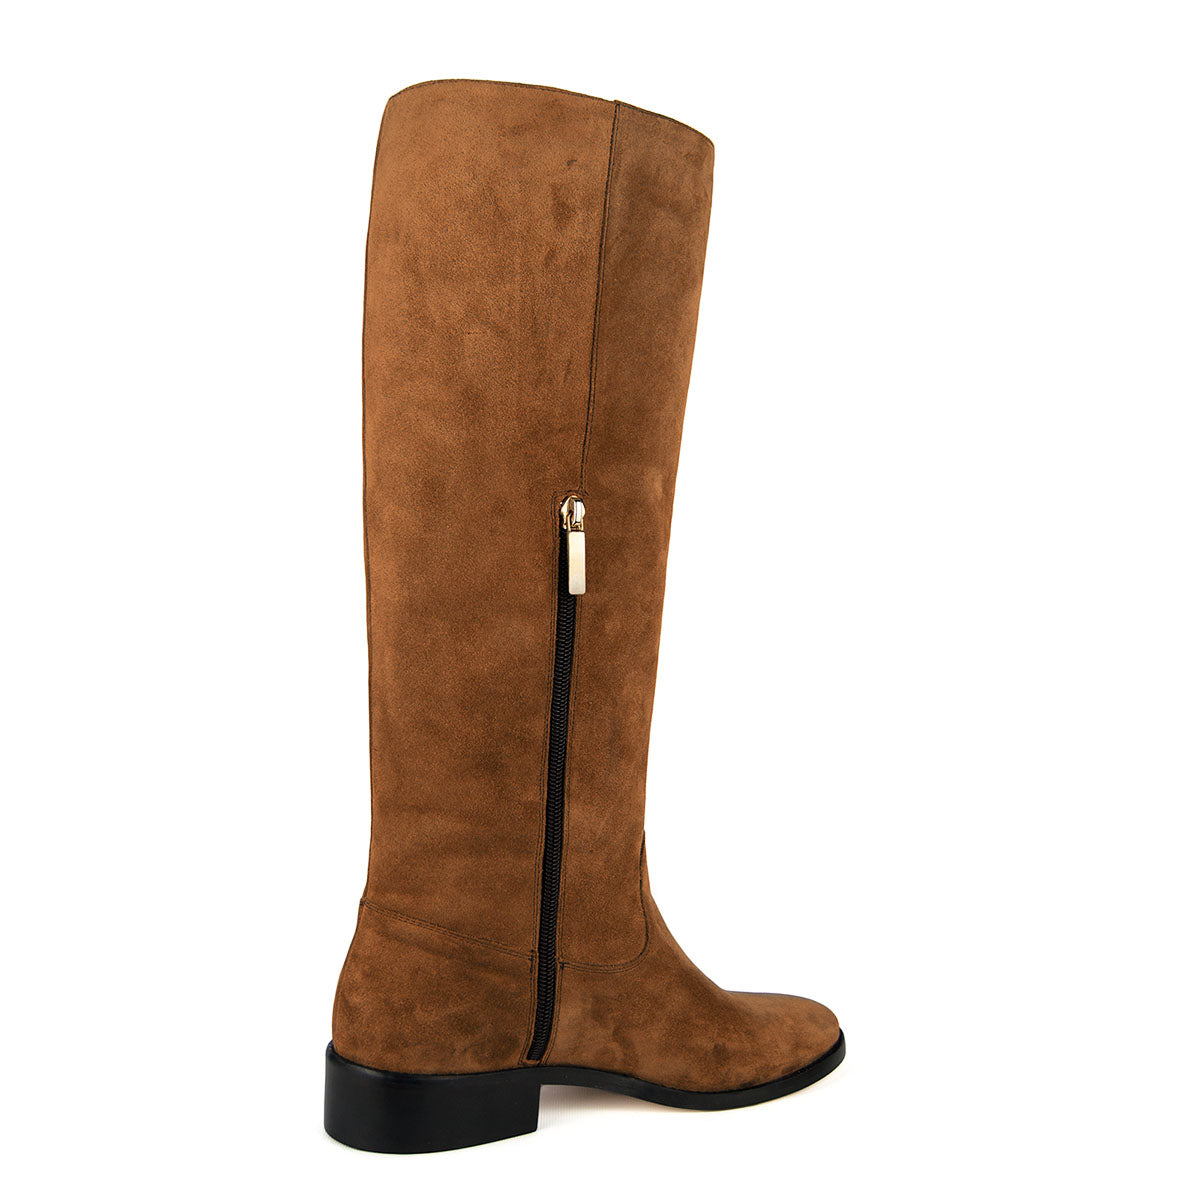 64e21e8f8 ... Achillea suede, cognac - wide calf boots, large fit boots, calf fitting  boots ...